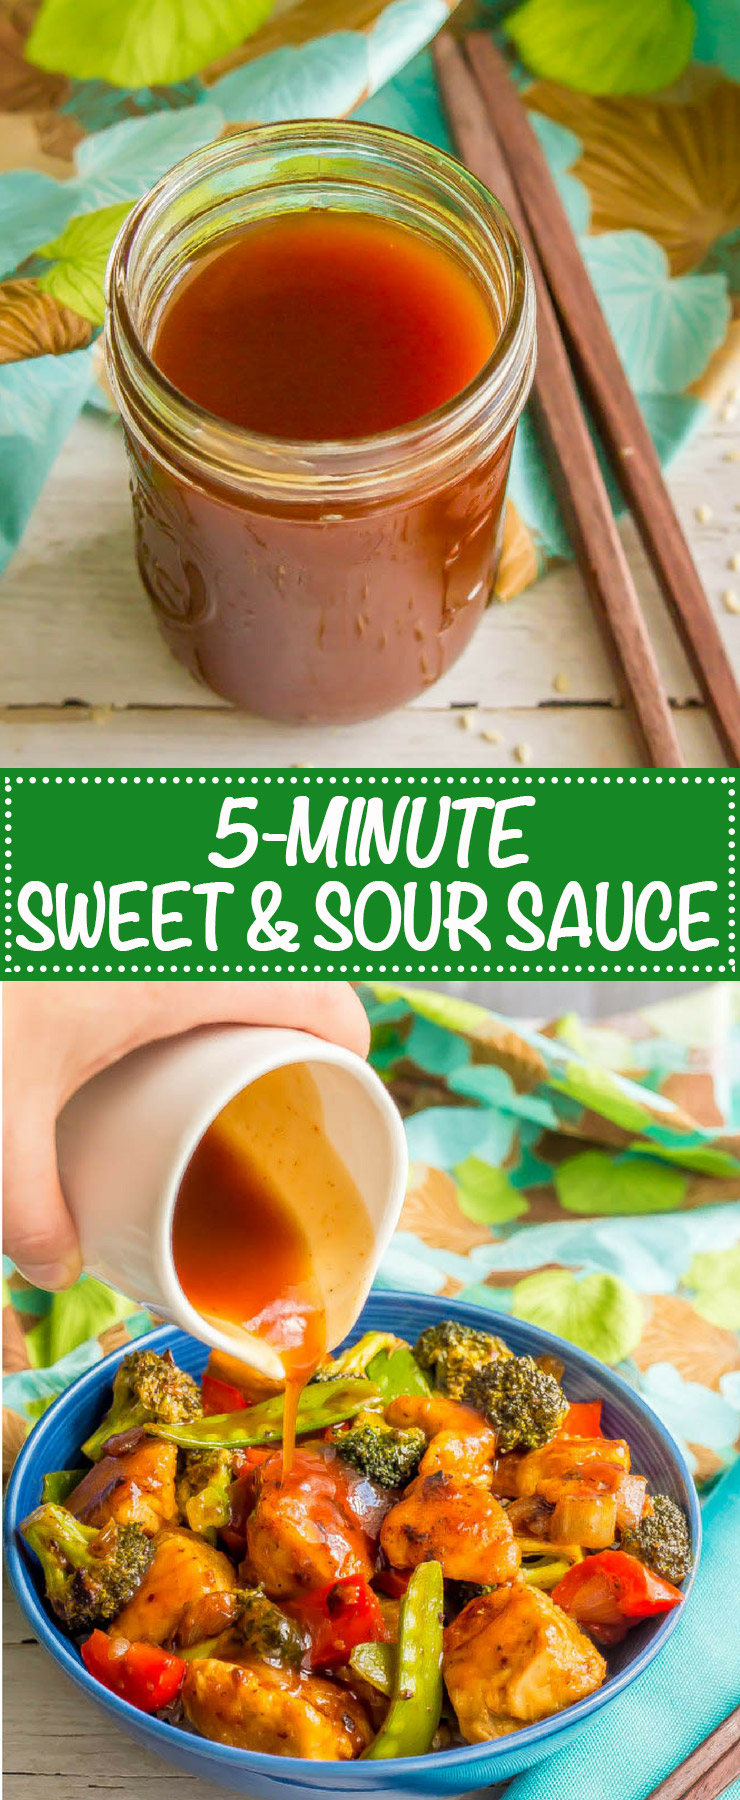 Homemade sweet and sour sauce is a quick and easy, silky smooth version of your takeout favorite. It's just 5 ingredients and 5 minutes - perfect for a weeknight dinner fix! #stirfry #Asiancooking #homemadesauce